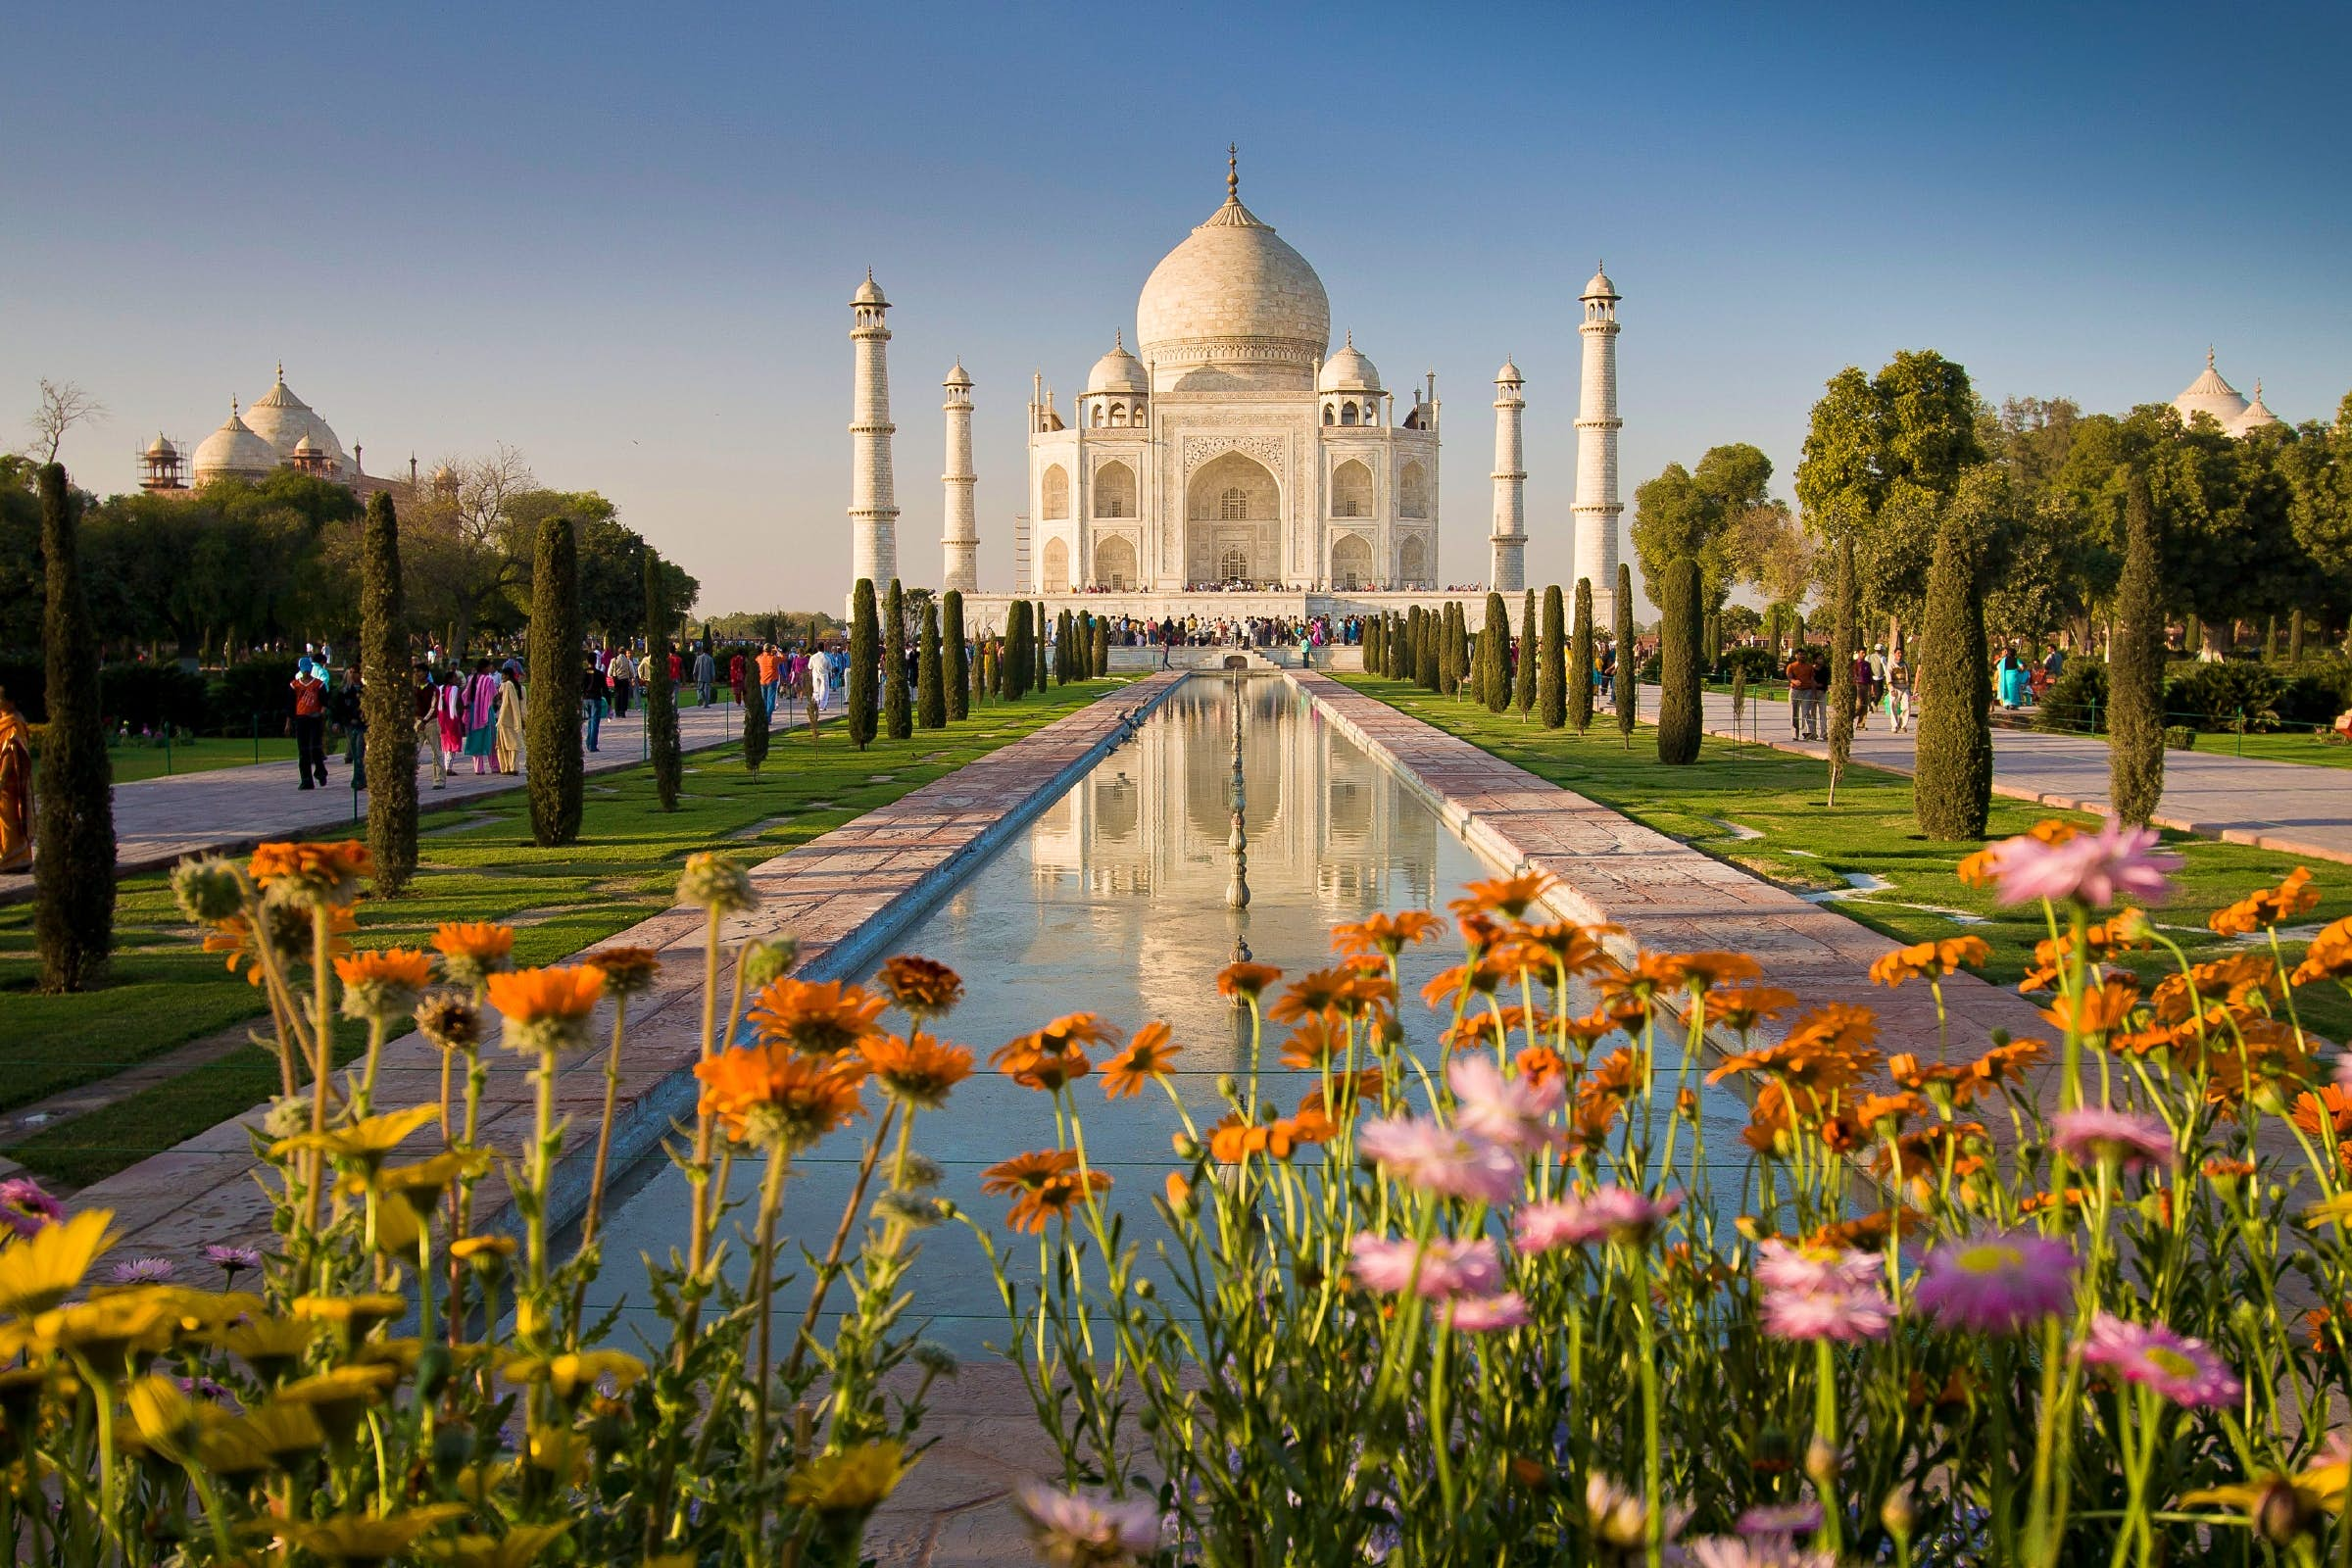 India's Taj Mahal with flowers in the foreground.